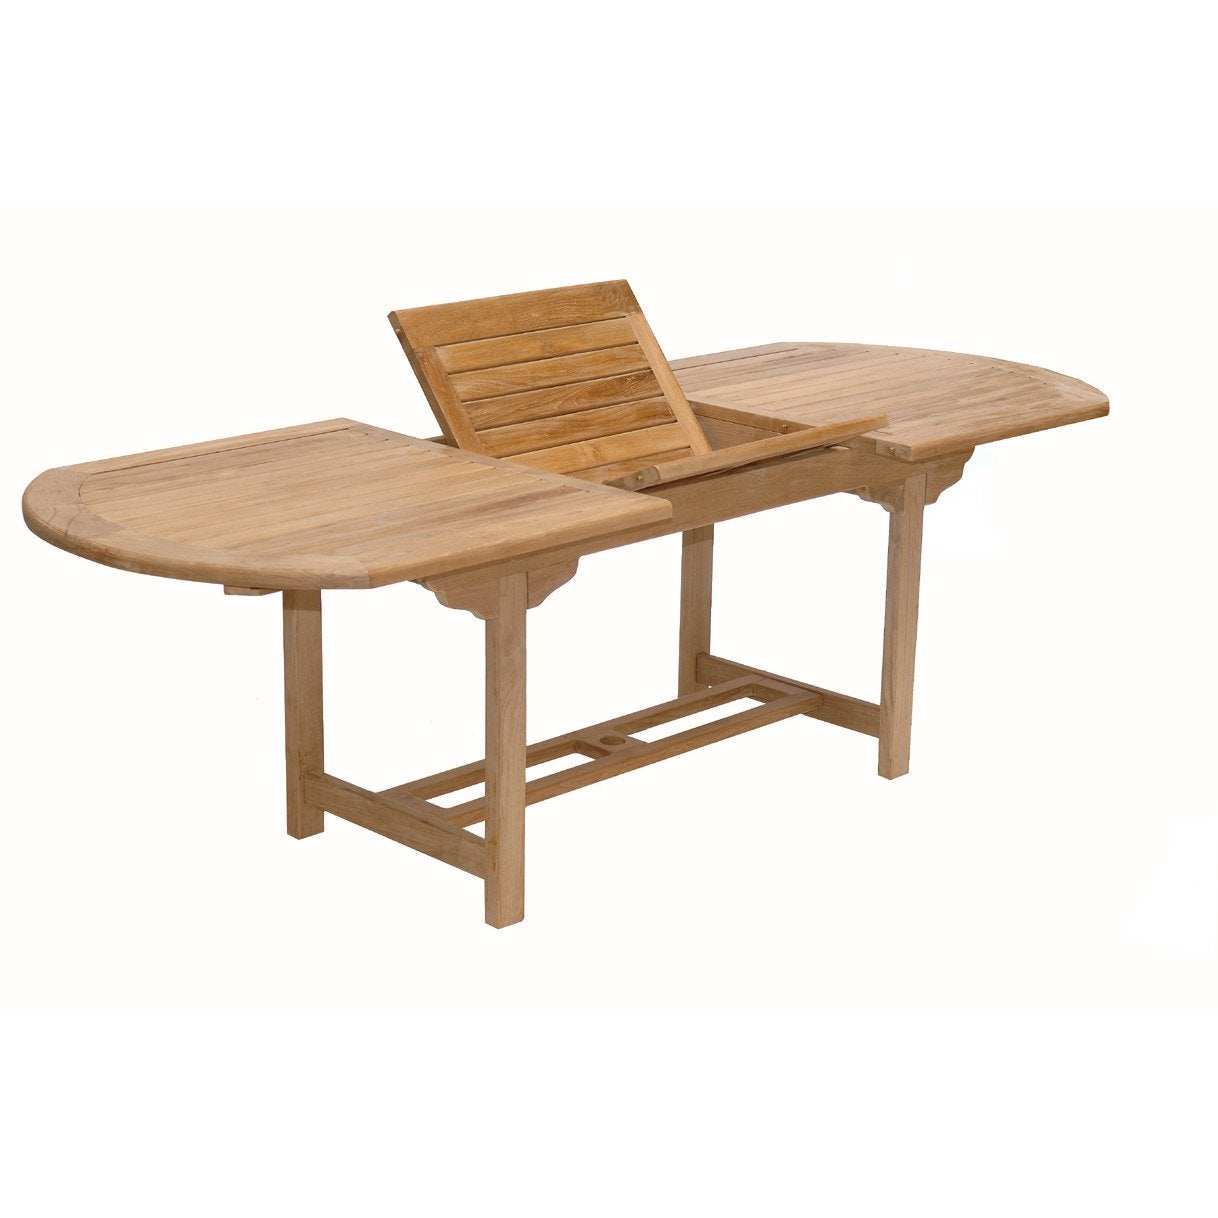 Table de jardin azur ovale naturel 8 personnes leroy merlin - Leroy merlin table pliante ...